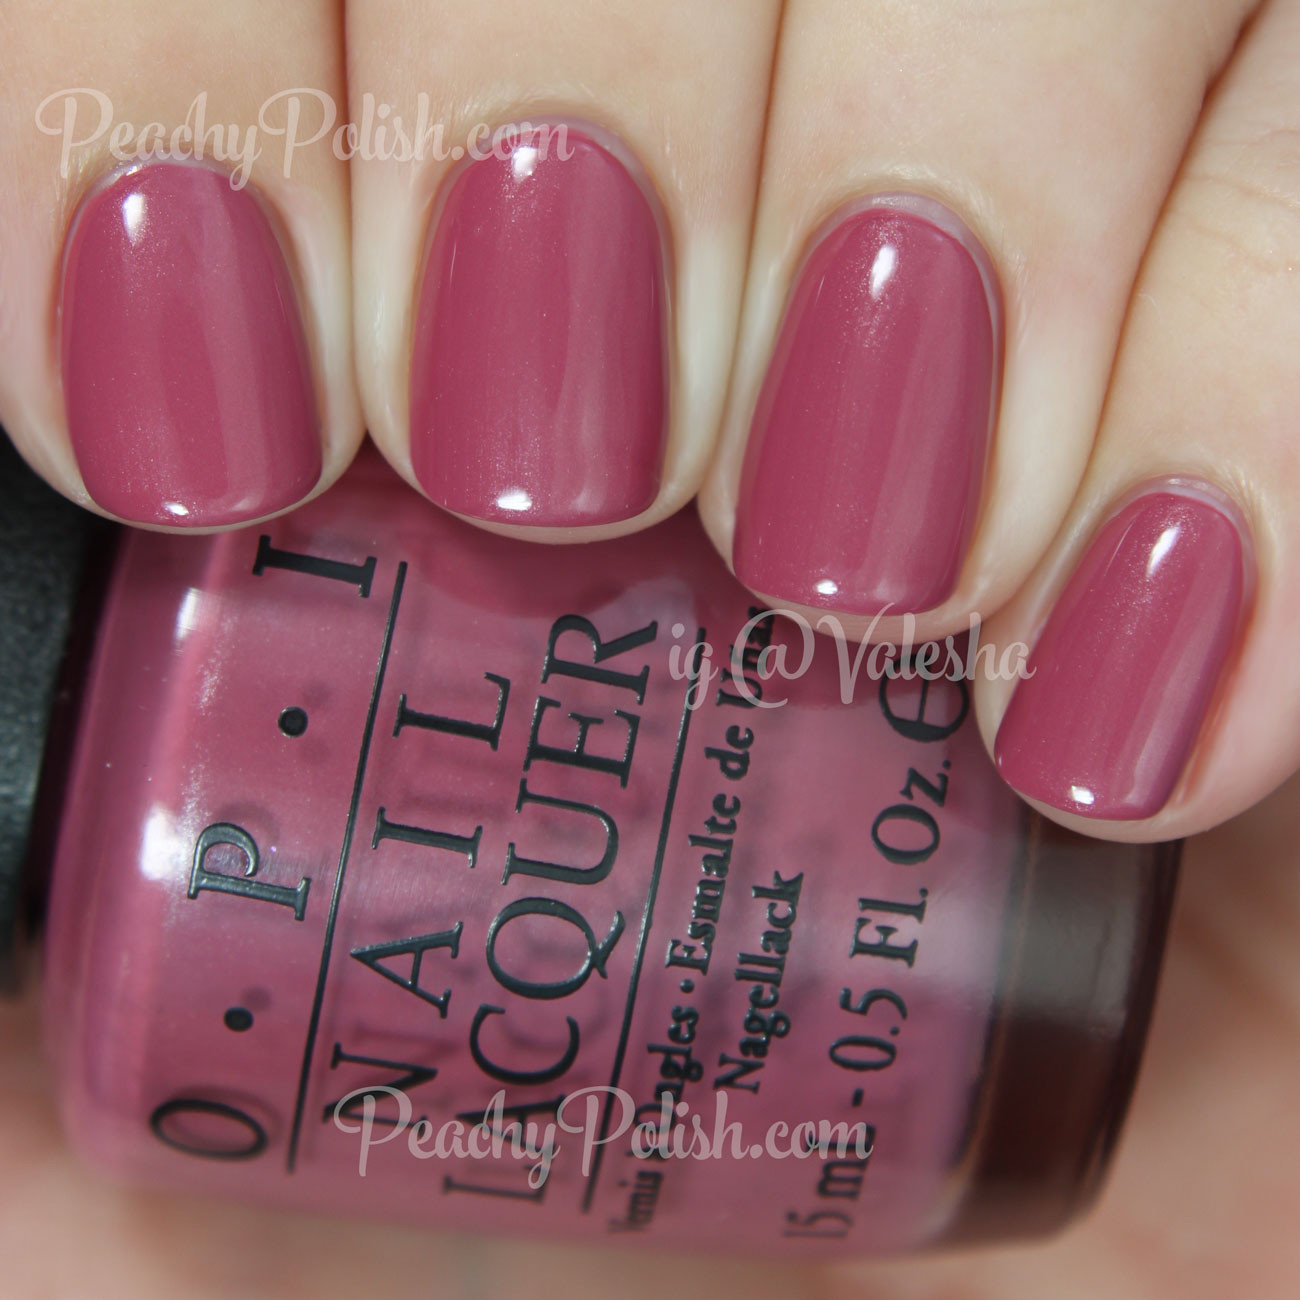 Spring Nail Colors Opi  OPI Spring 2015 Hawaii Collection Swatches & Review